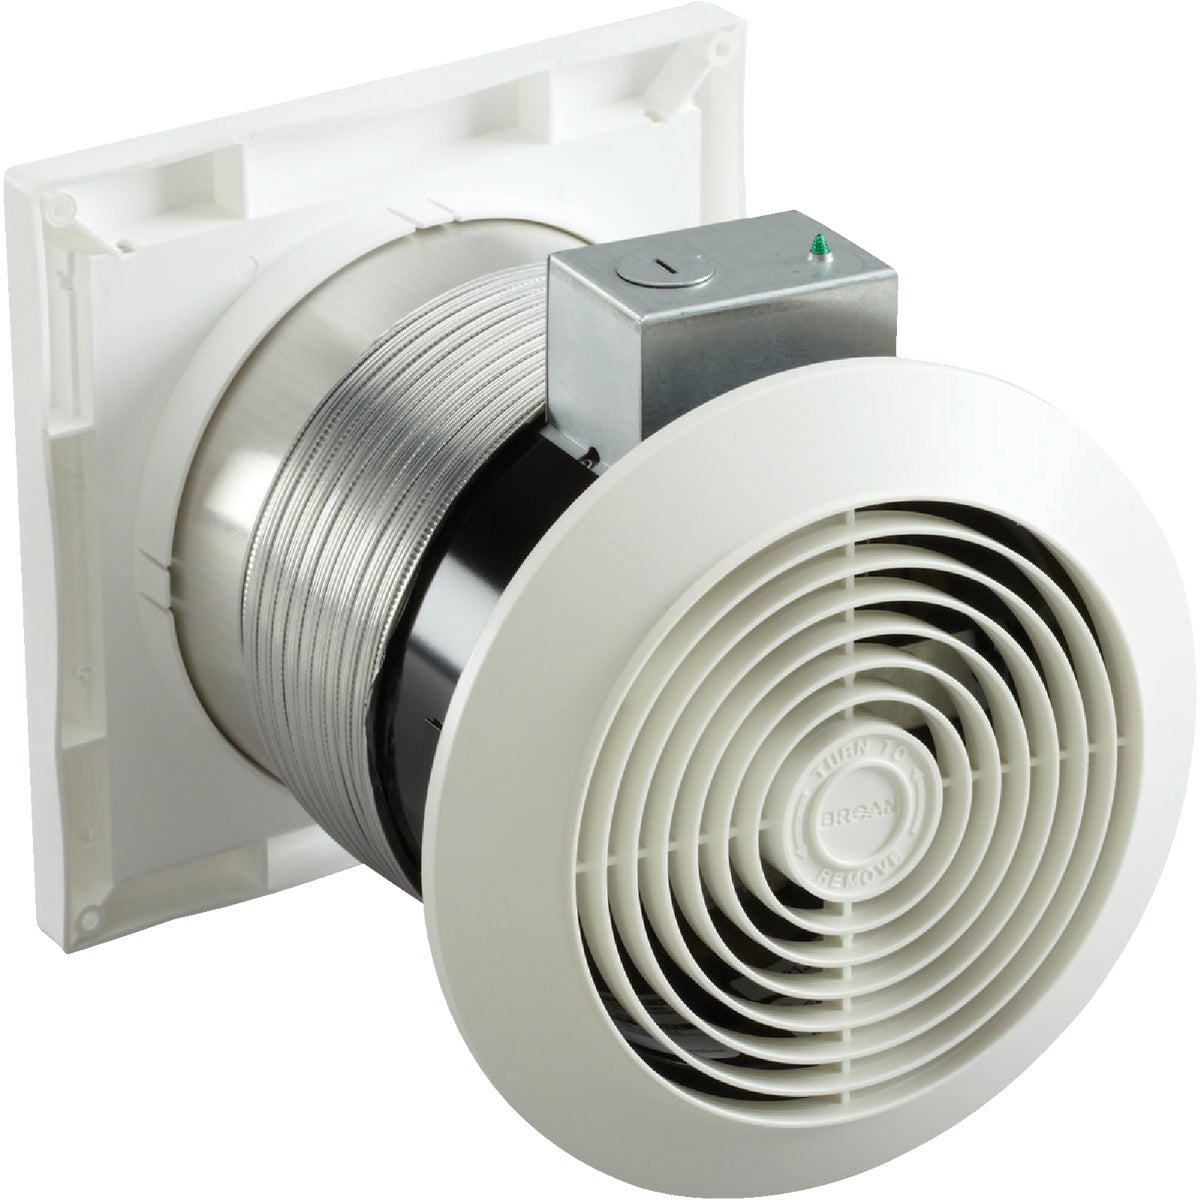 WALL VENTILATOR - 512M by Broan Nutone